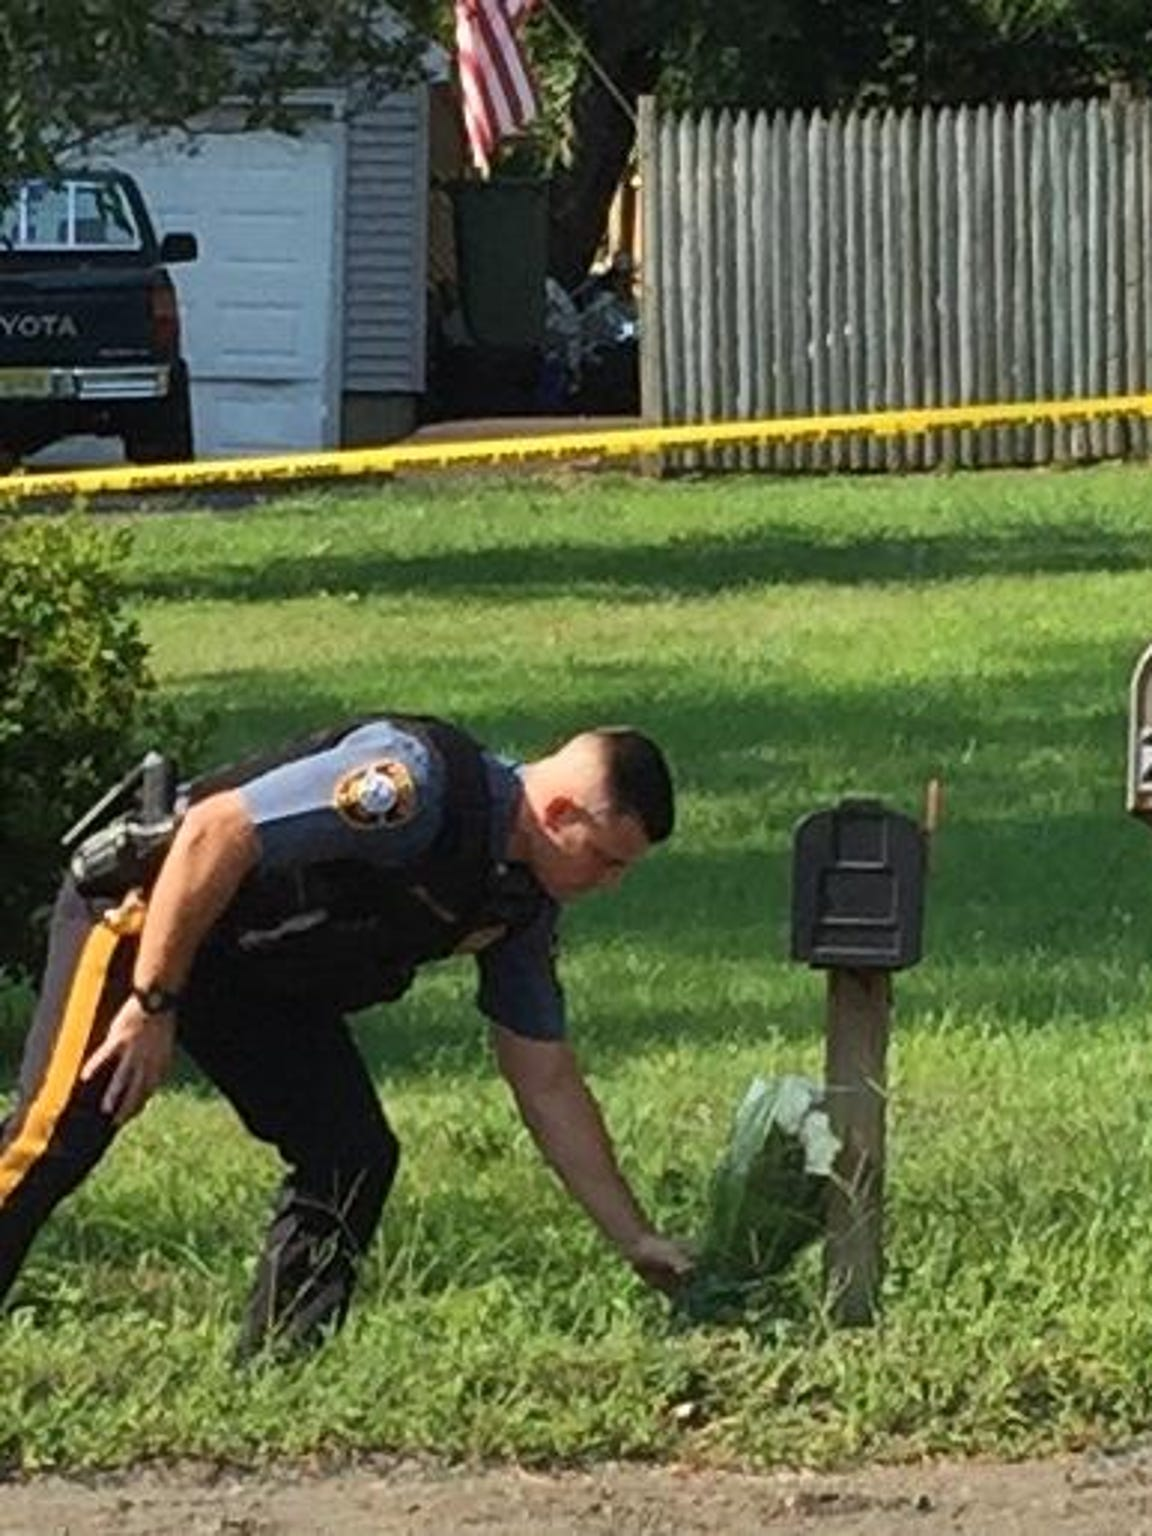 A Warren Township police officer places flowers beside the mailbox of Heidi Lynn Errickson's home on Aug. 17, a day after Errickson and her brother were killed by her fiance.